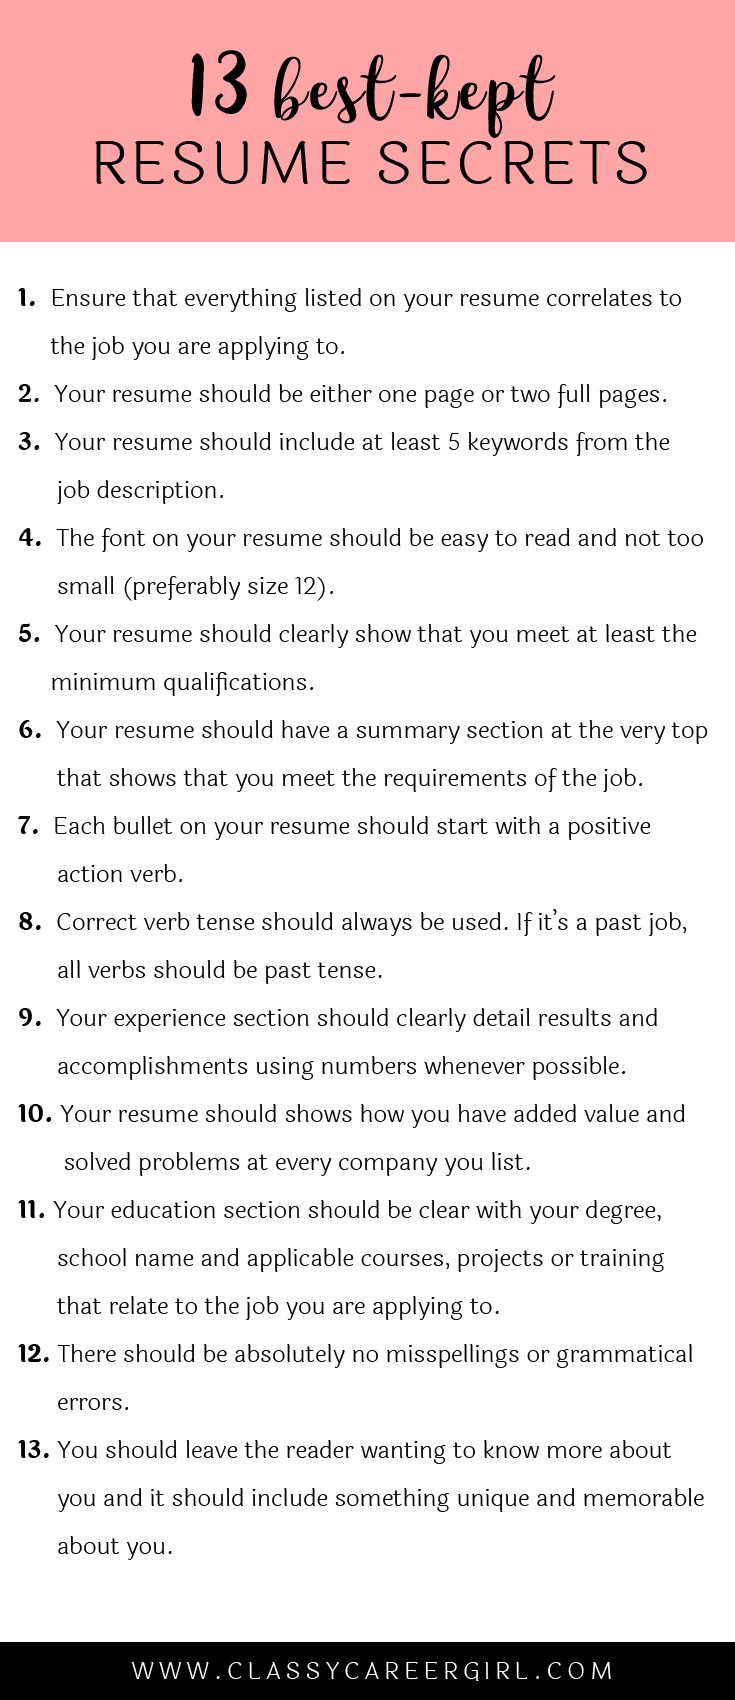 Opposenewapstandardsus  Mesmerizing  Ideas About Resume On Pinterest  Cv Format Resume Cv And  With Extraordinary Some Hiring Managers Will Toss Your Resume Out If You Dont Know These  With Enchanting Medical Biller Resume Also Net Developer Resume In Addition Federal Resume Examples And Objective For Customer Service Resume As Well As Free Creative Resume Templates Word Additionally Awesome Resume From Pinterestcom With Opposenewapstandardsus  Extraordinary  Ideas About Resume On Pinterest  Cv Format Resume Cv And  With Enchanting Some Hiring Managers Will Toss Your Resume Out If You Dont Know These  And Mesmerizing Medical Biller Resume Also Net Developer Resume In Addition Federal Resume Examples From Pinterestcom